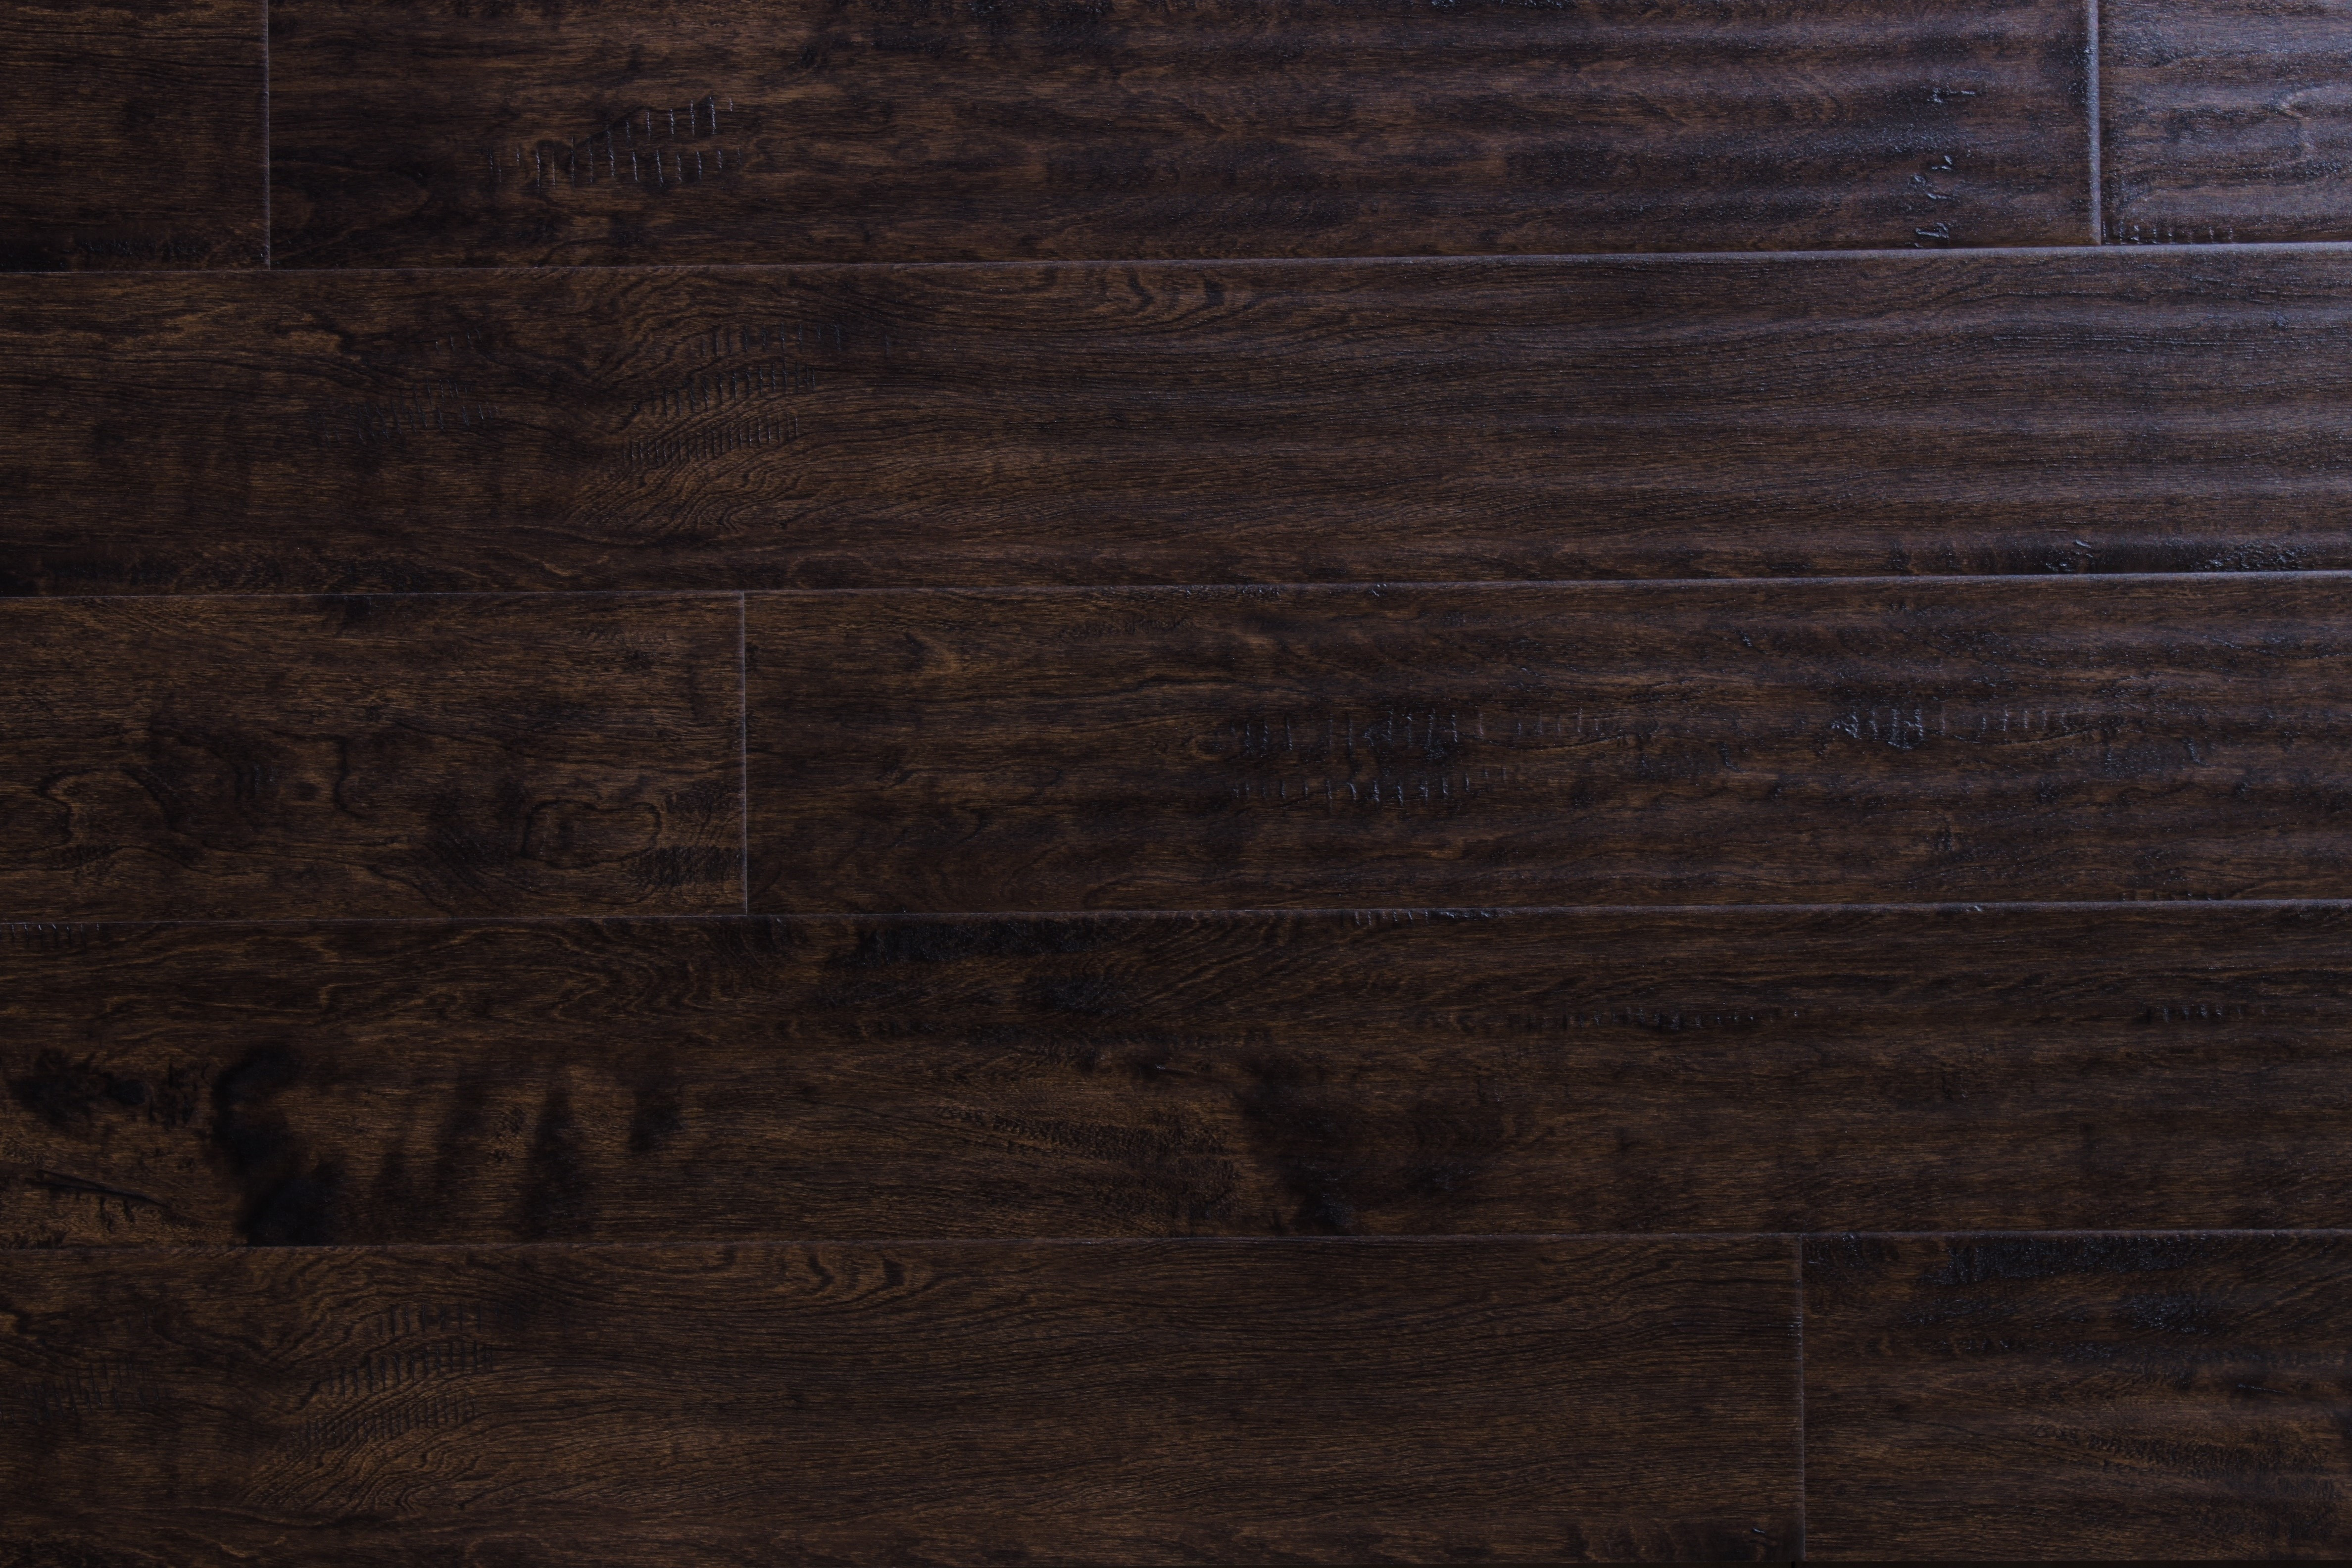 hardwood flooring places near me of wood flooring free samples available at builddirecta with regard to tailor multi gb 5874277bb8d3c